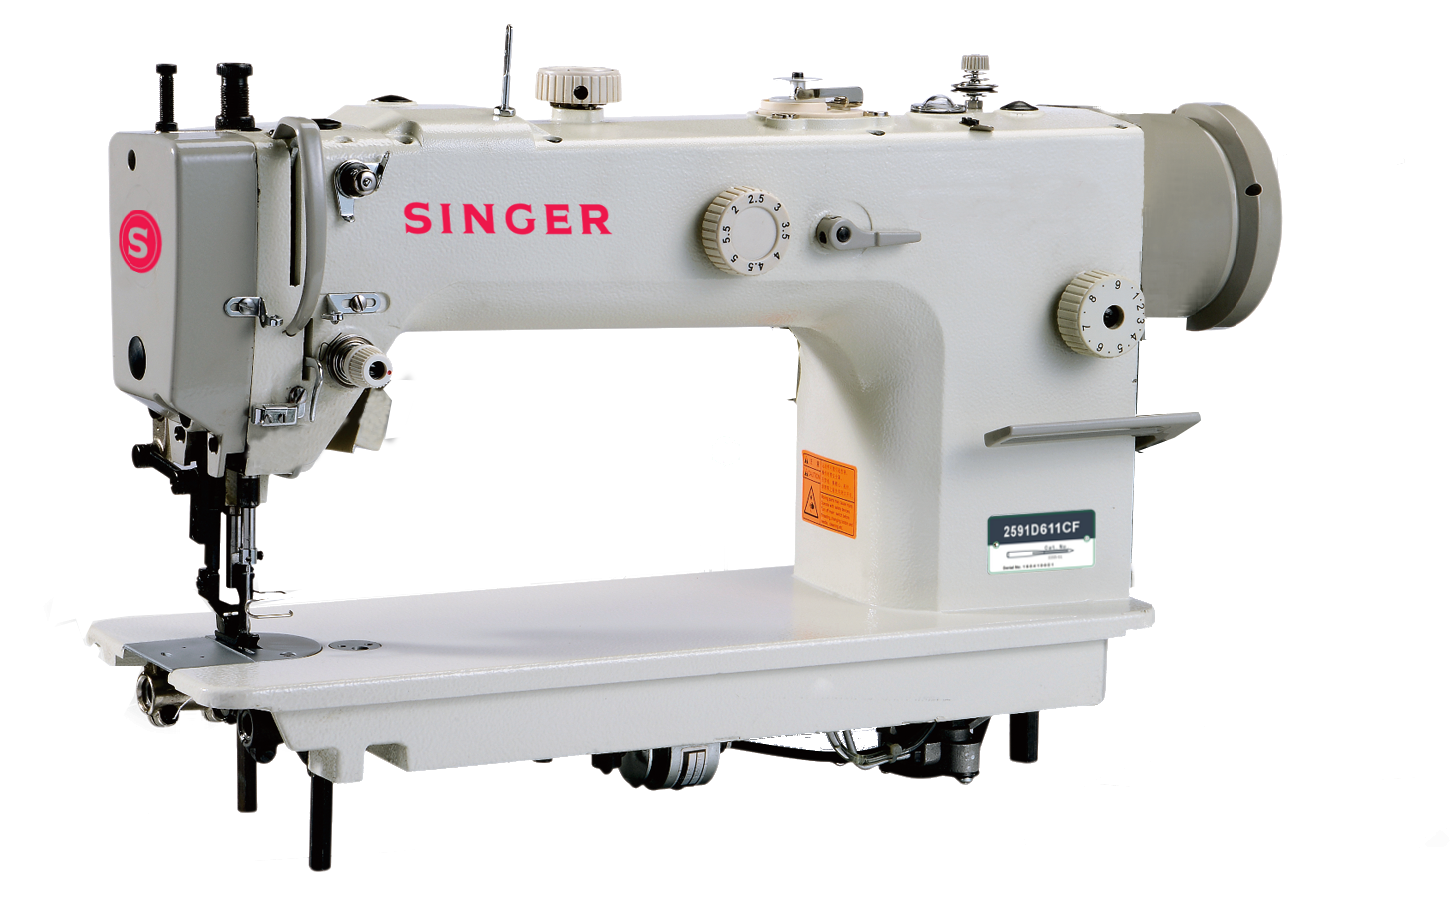 Sewing Machine PNG Images Transparent Free Download.